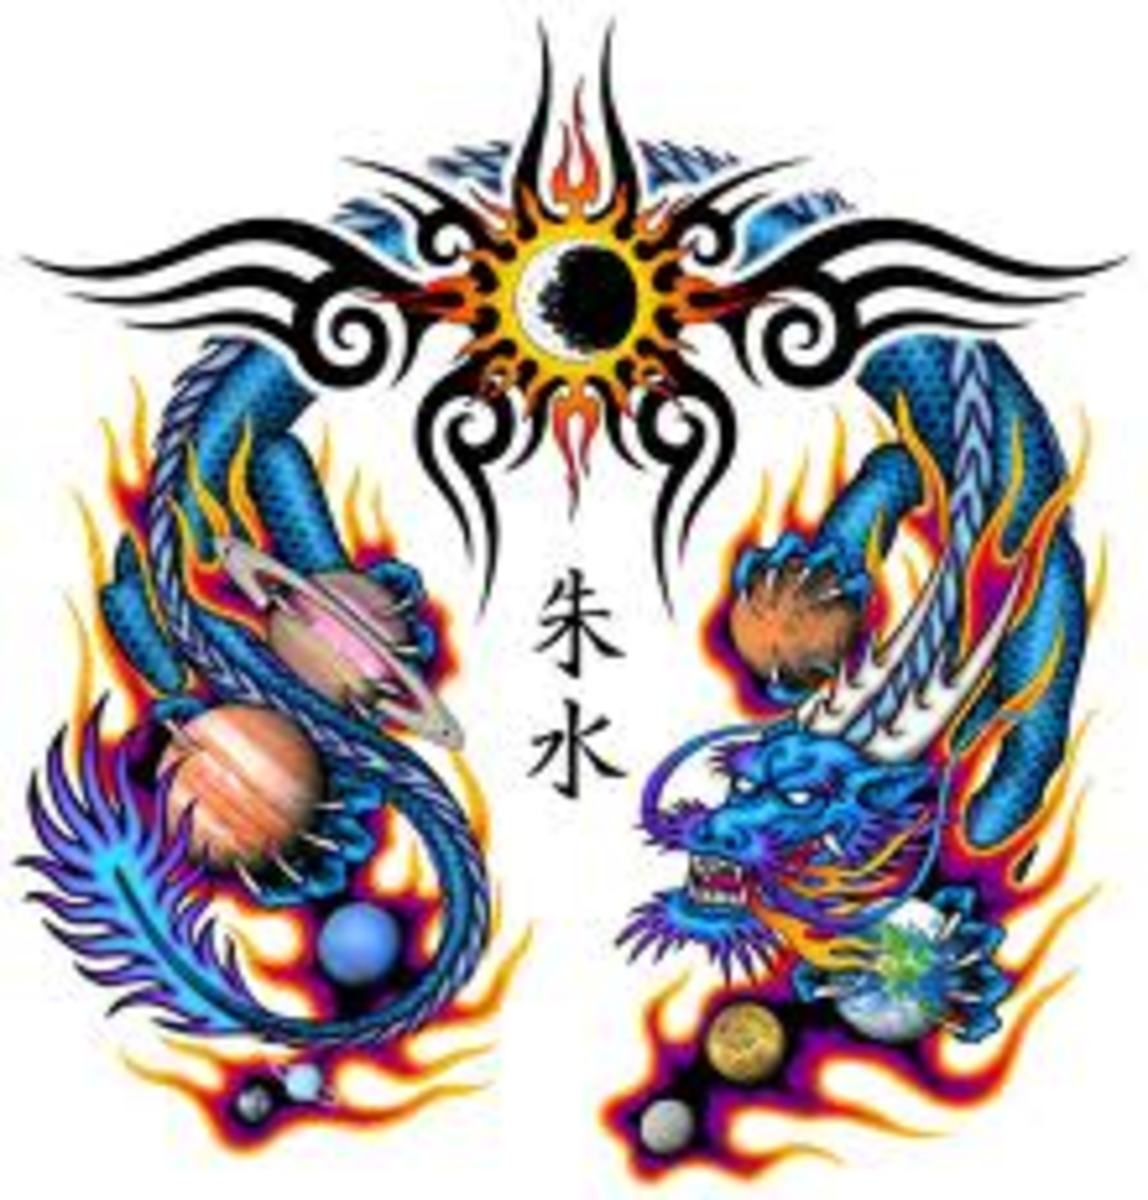 In this Chinese tattoo, the colors are extraordinary and brilliant. The sun can also be seen at top. As I mentioned before, the number nine is very important to the Chinese culture.